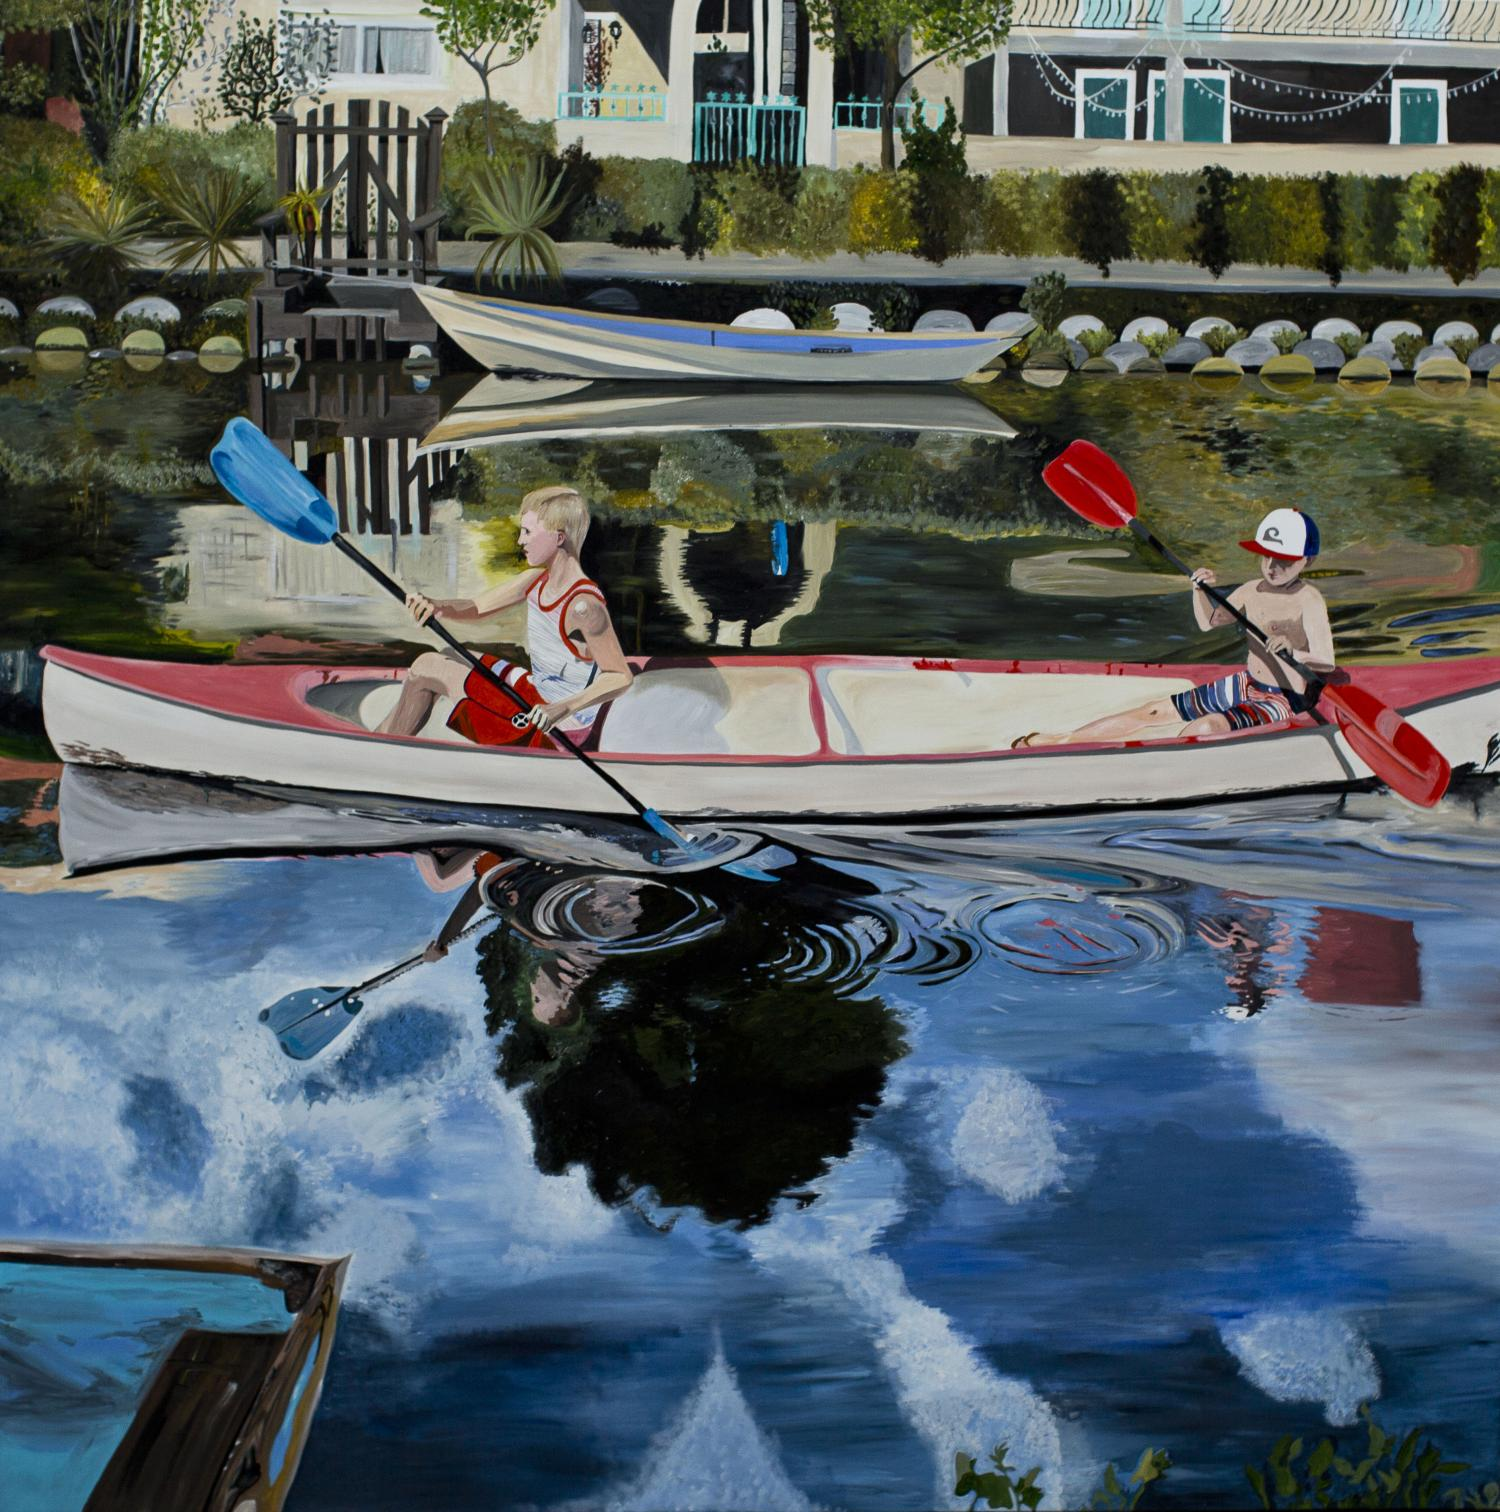 Rowing in Venice ·200 x 200 cm · 2017